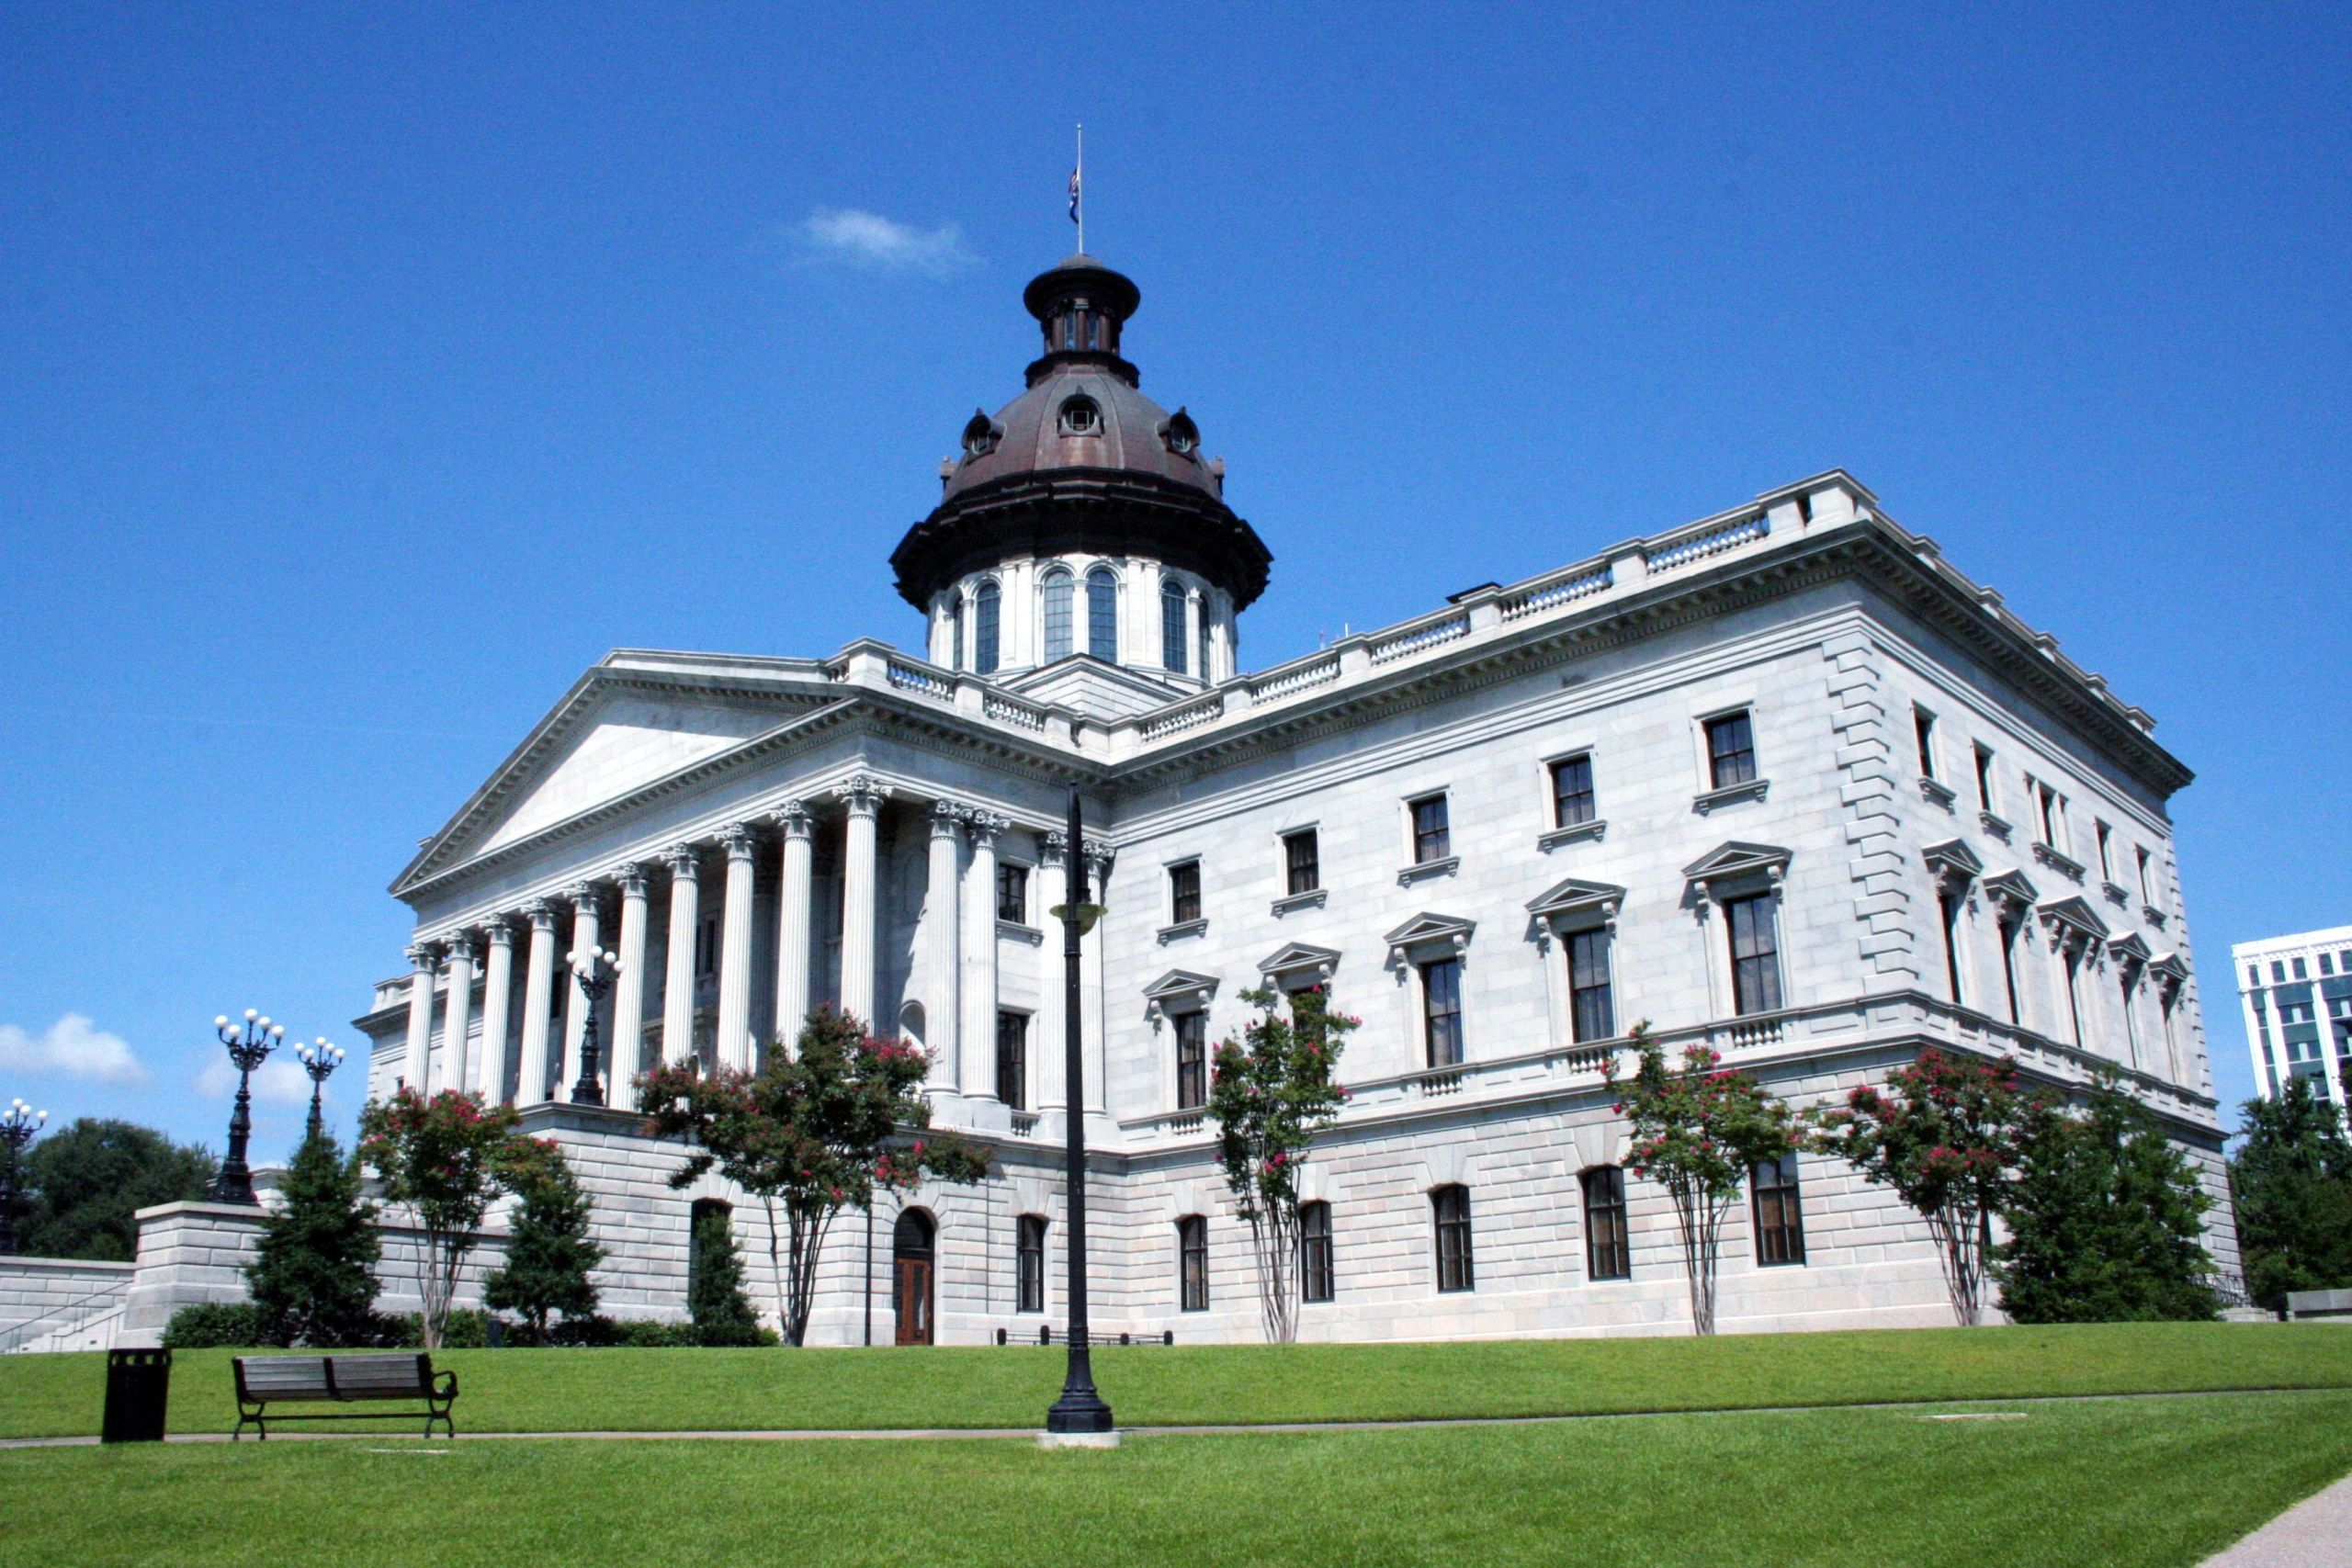 The SC State Capitol Building